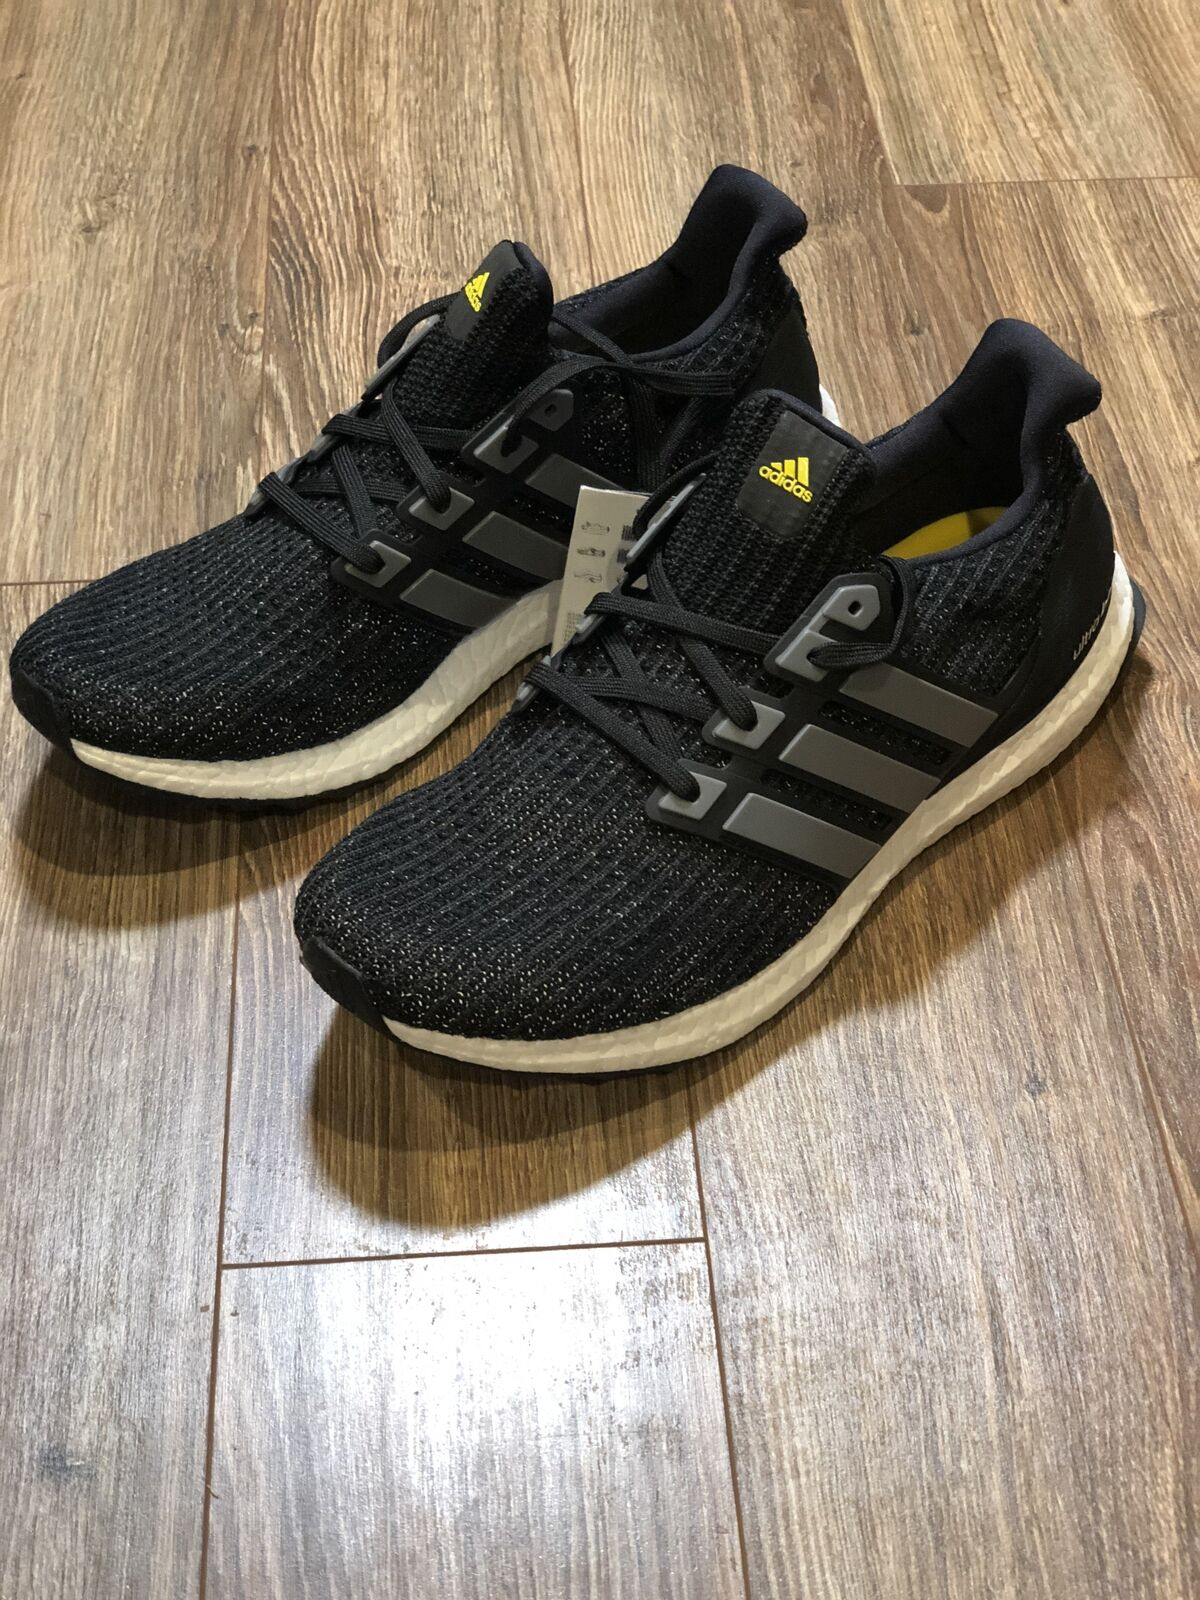 5a5a5aa136e adidas Ultra Boost 5th Anniversary Black Size 10.5 for sale online ...